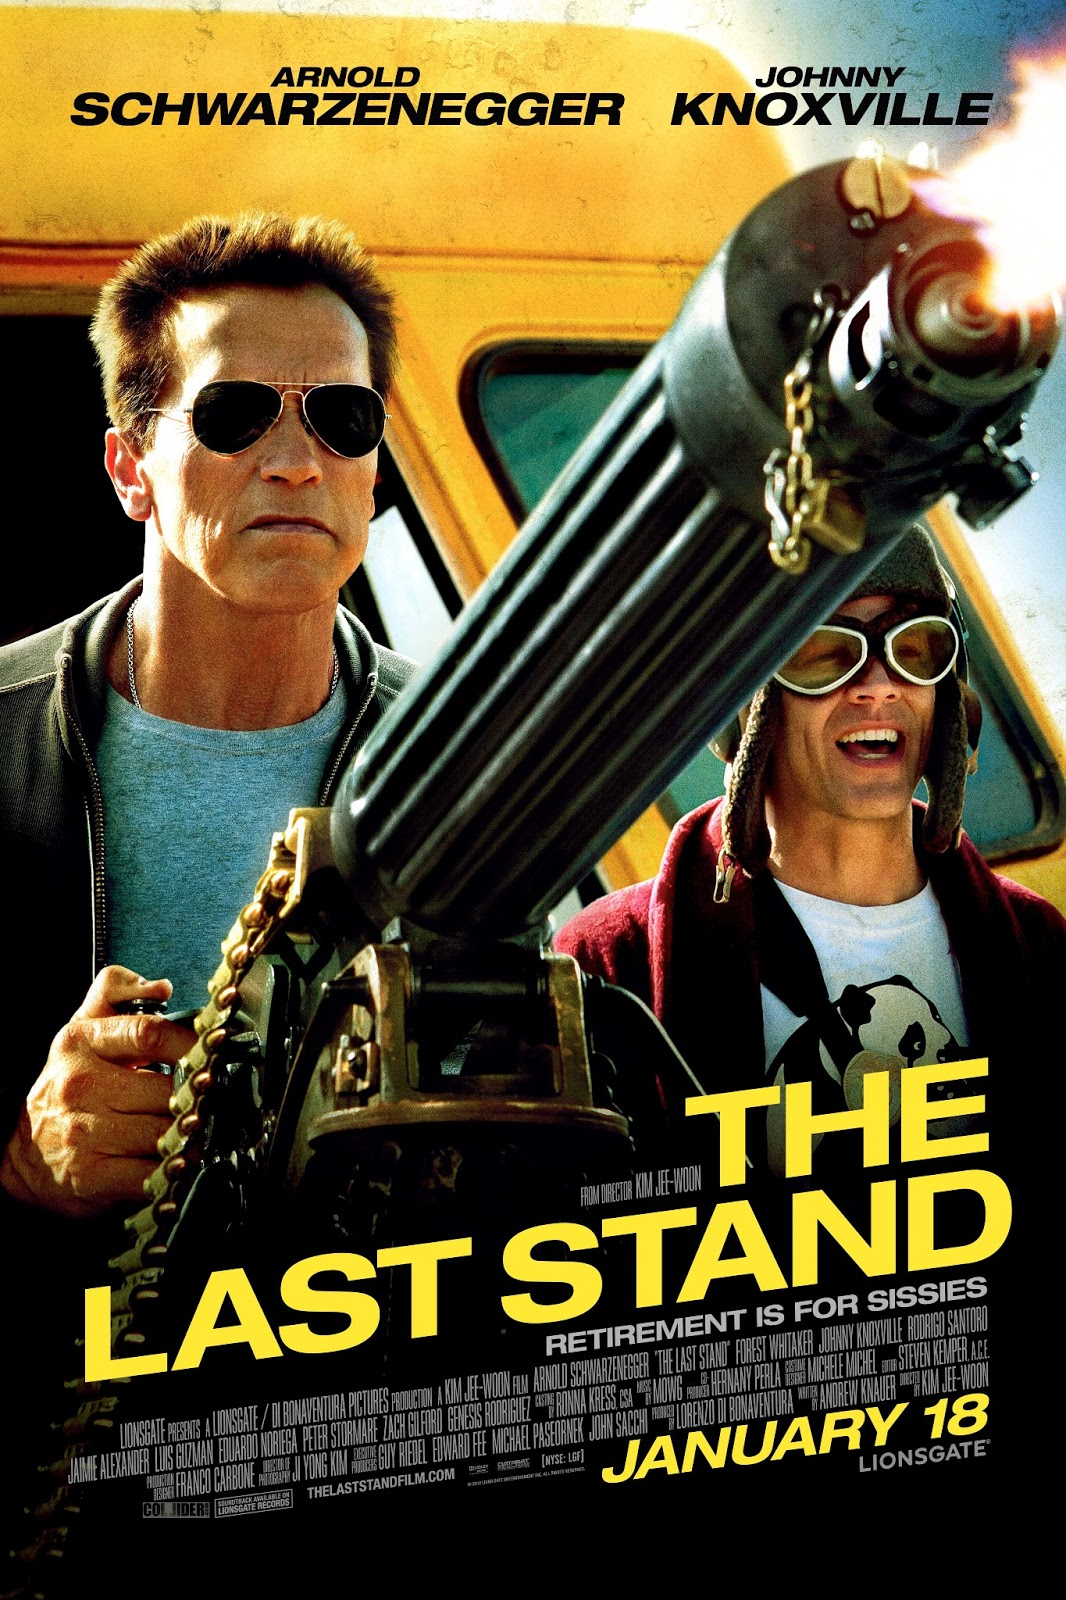 http://4.bp.blogspot.com/-lYvrkvS_UCU/USGyhN31Y7I/AAAAAAAACQU/sduzBcBTdpw/s1600/The-Last-Stand-poster-final.jpg